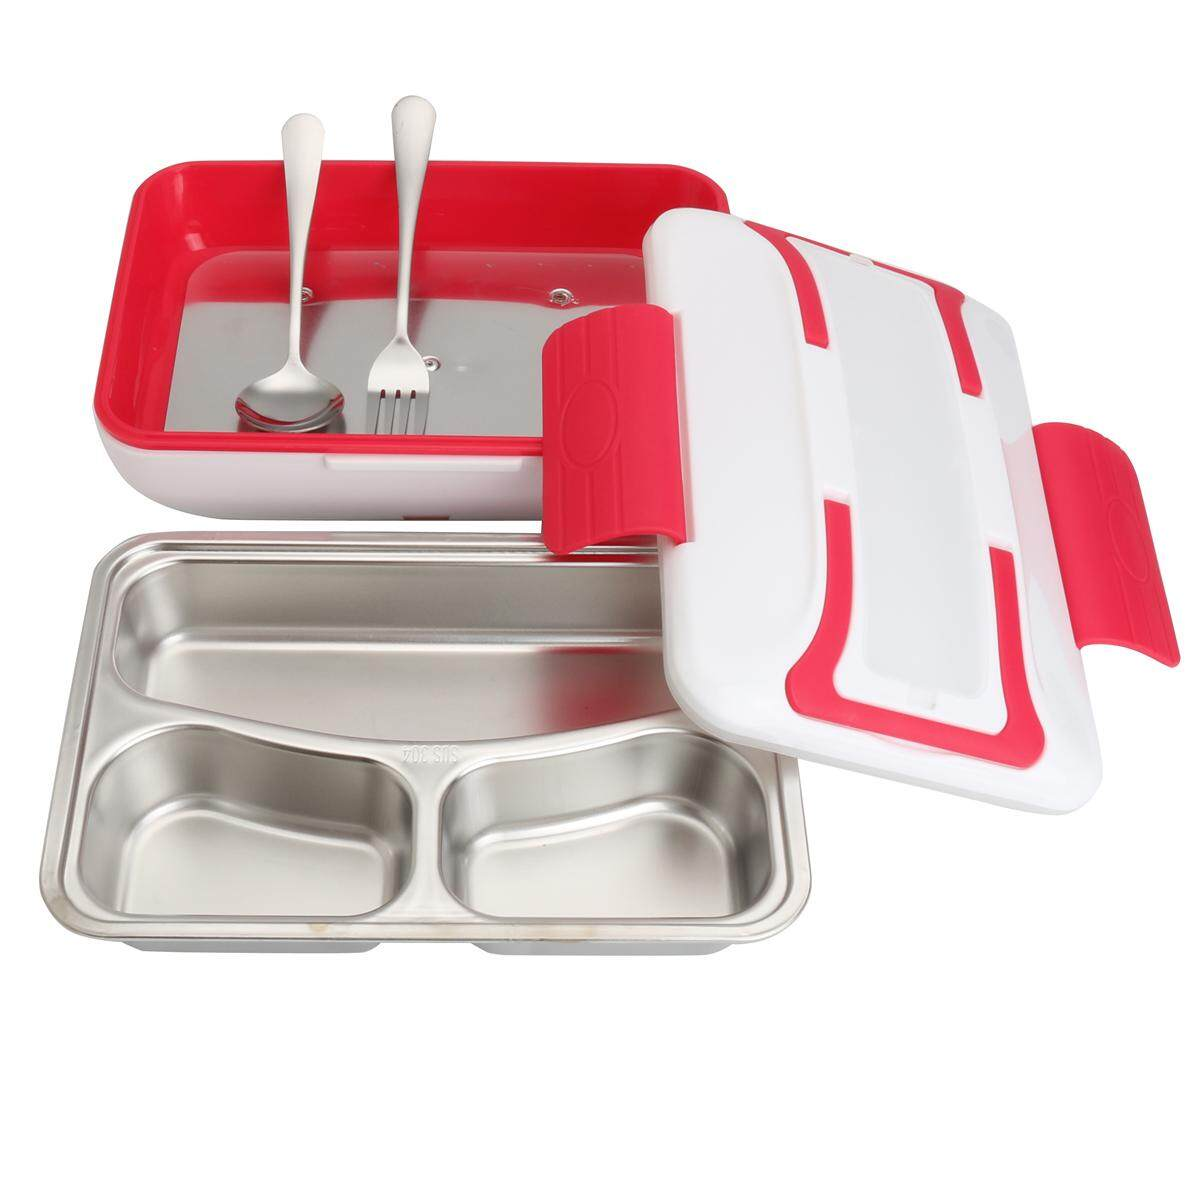 Portable Car Truck Electric Heating Lunch Box Food Warm Heater Storage Container By Moonbeam